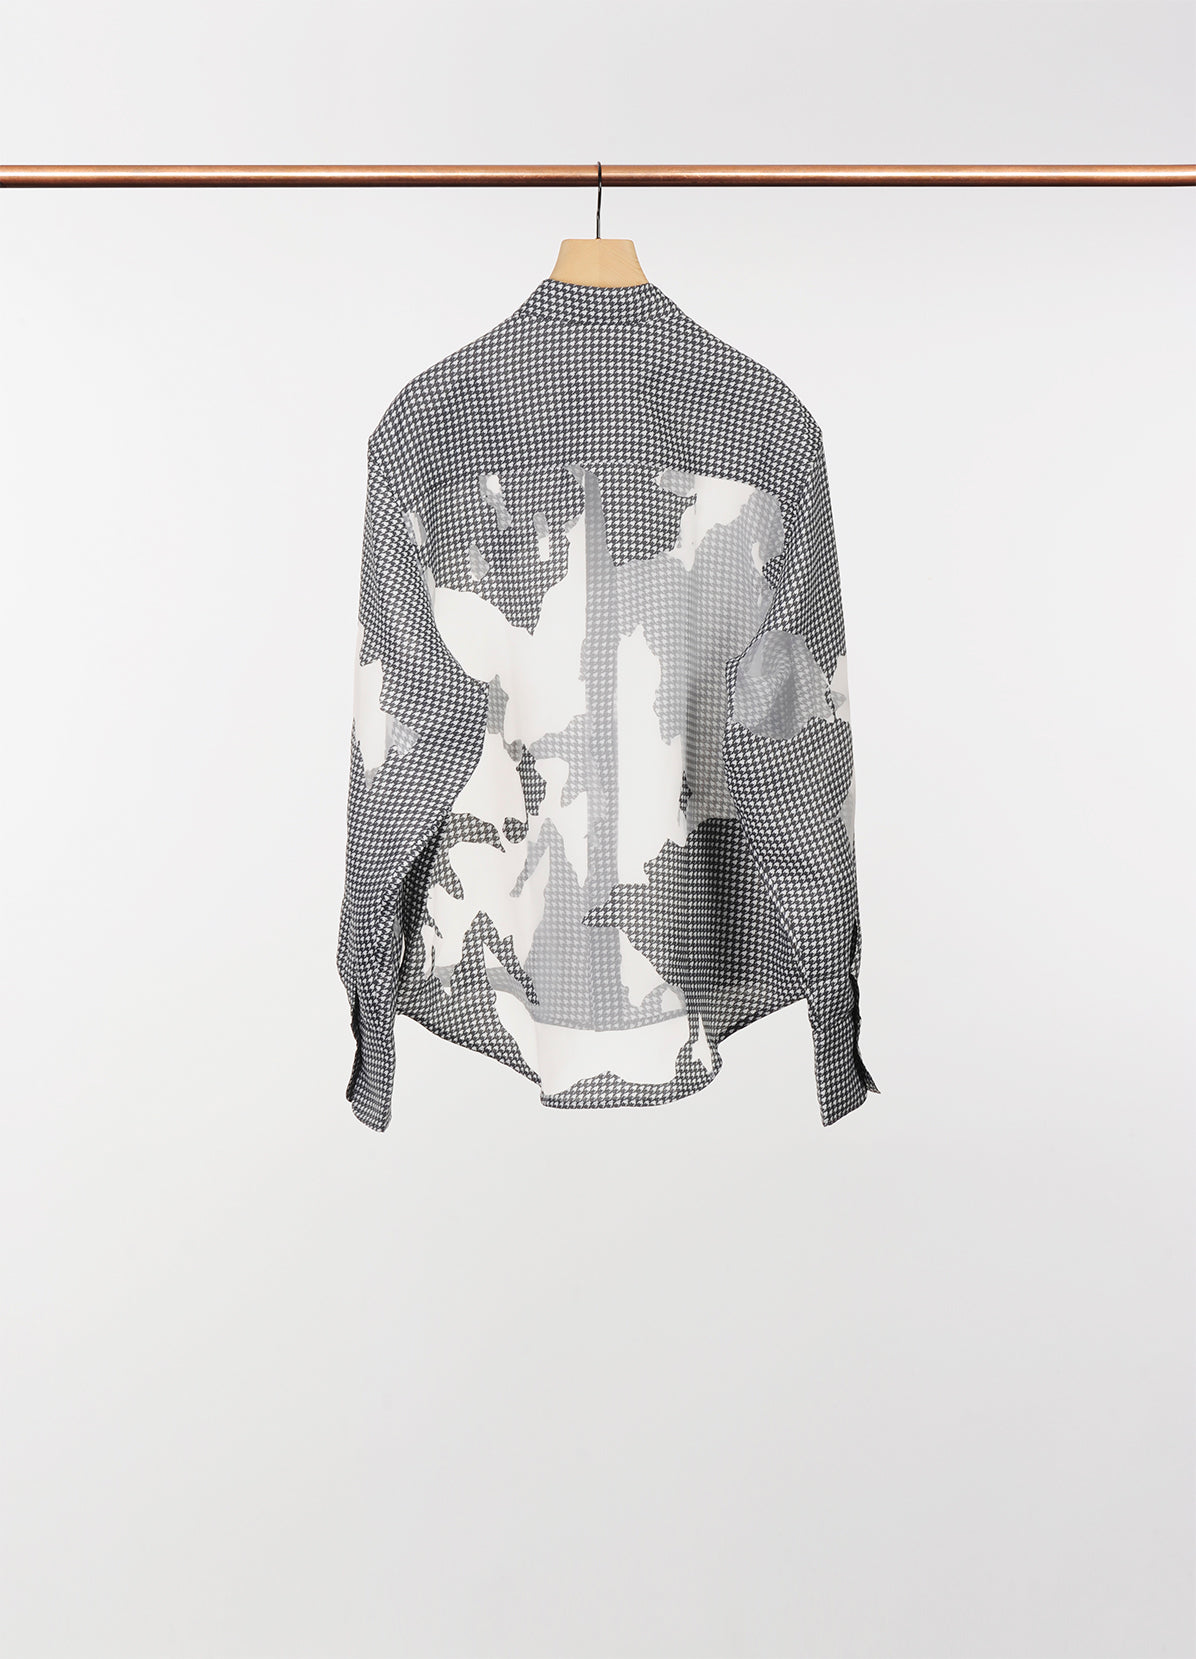 RELAXED FIT SHIRT, WITH DIGITAL PRINT AND A DISTRESSED DEVORE PRINT